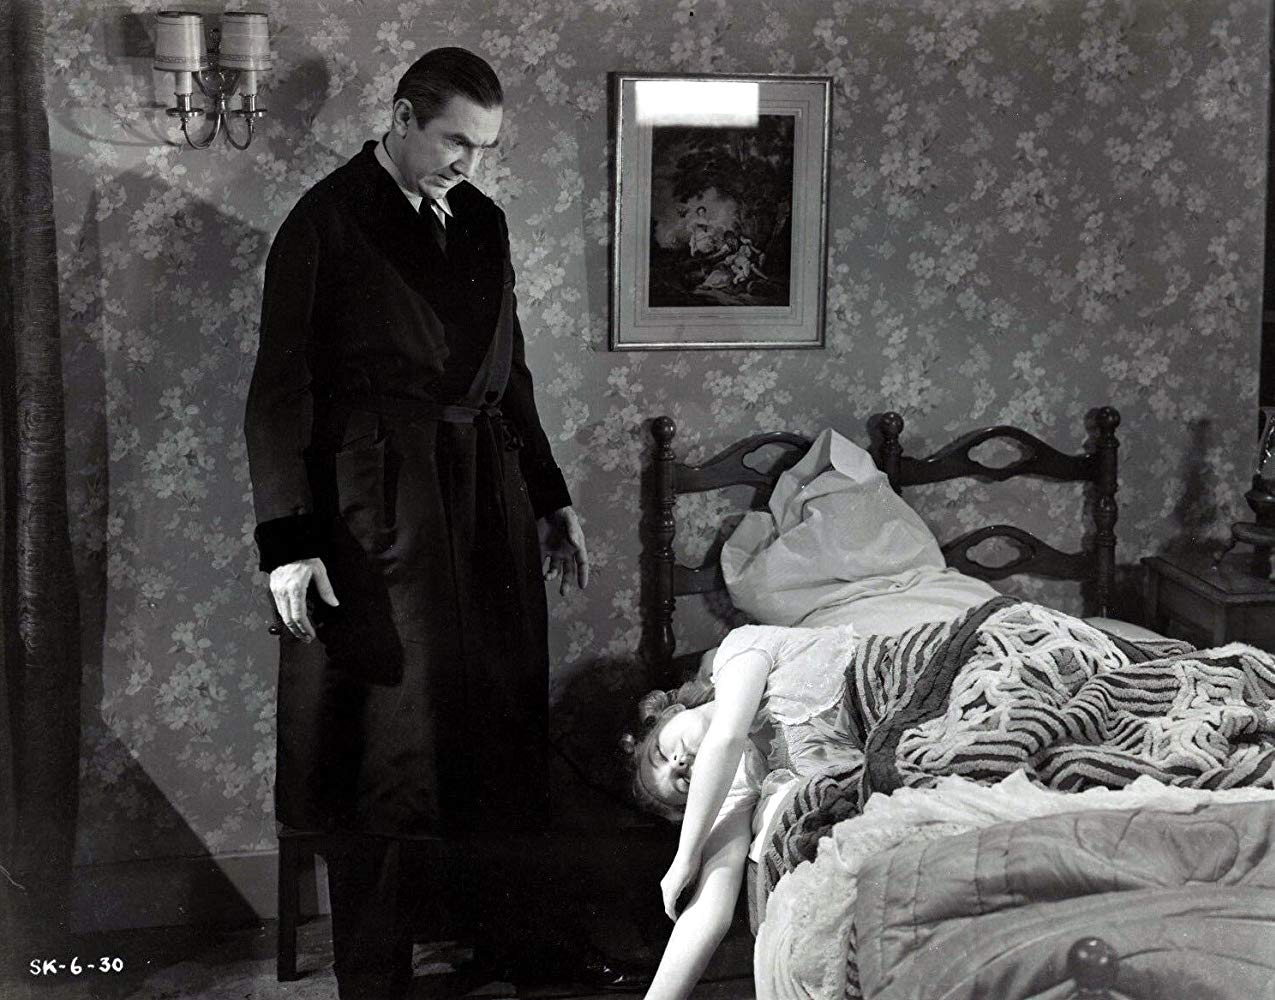 Dr Lorenz (Bela Lugosi) stands over unconscious wife Elizabeth Russell in The Corpse Vanishes (1942)